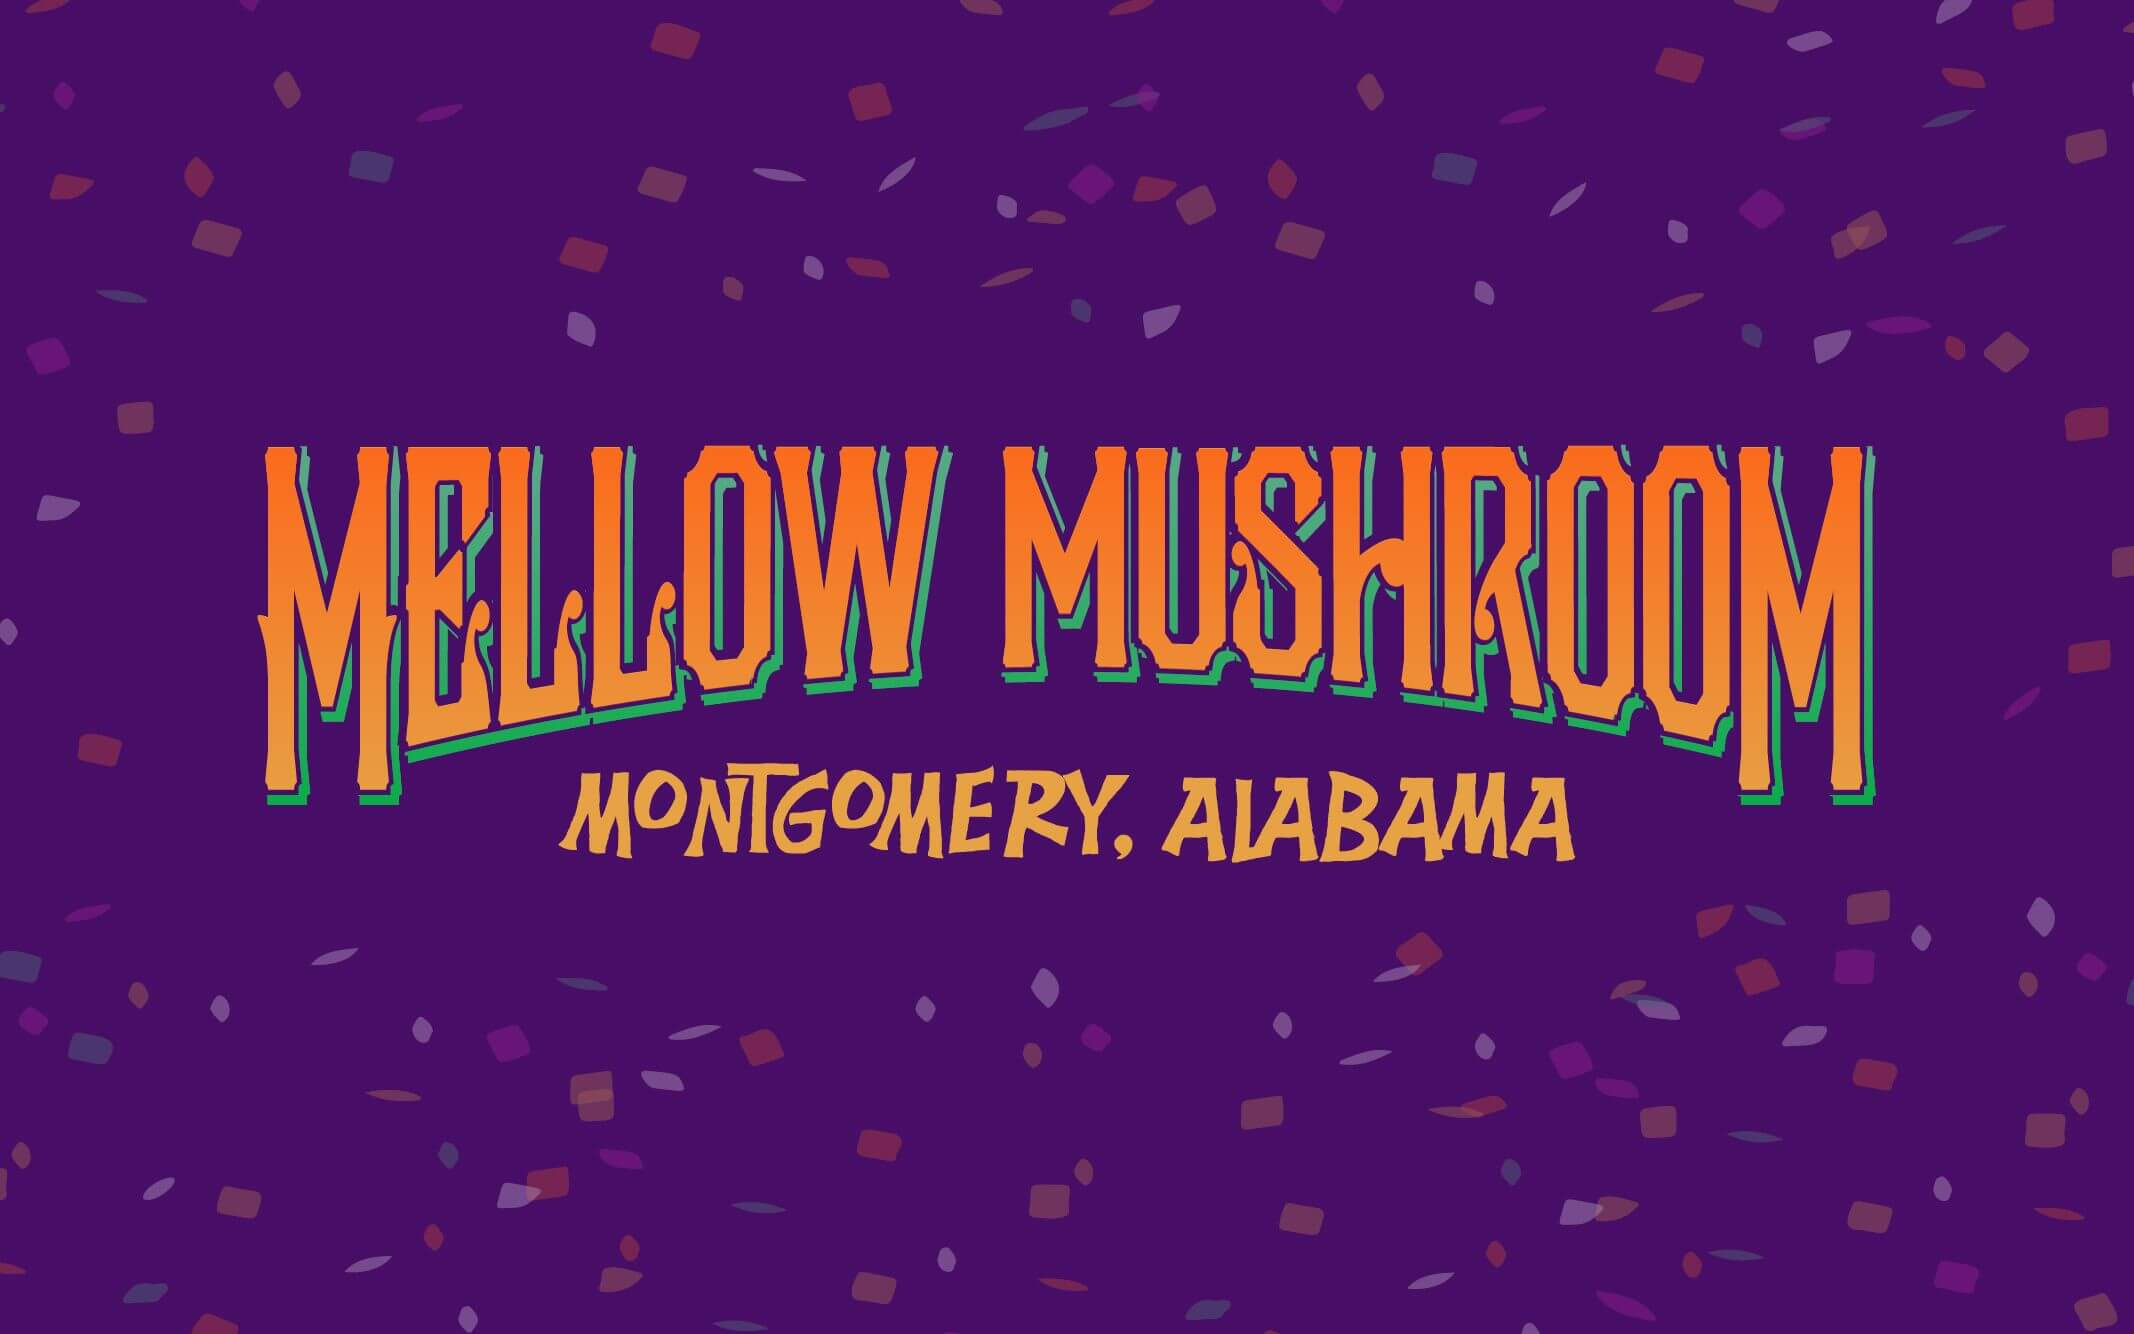 Mellow Mushroom Downtown Montgomery store information local design logo